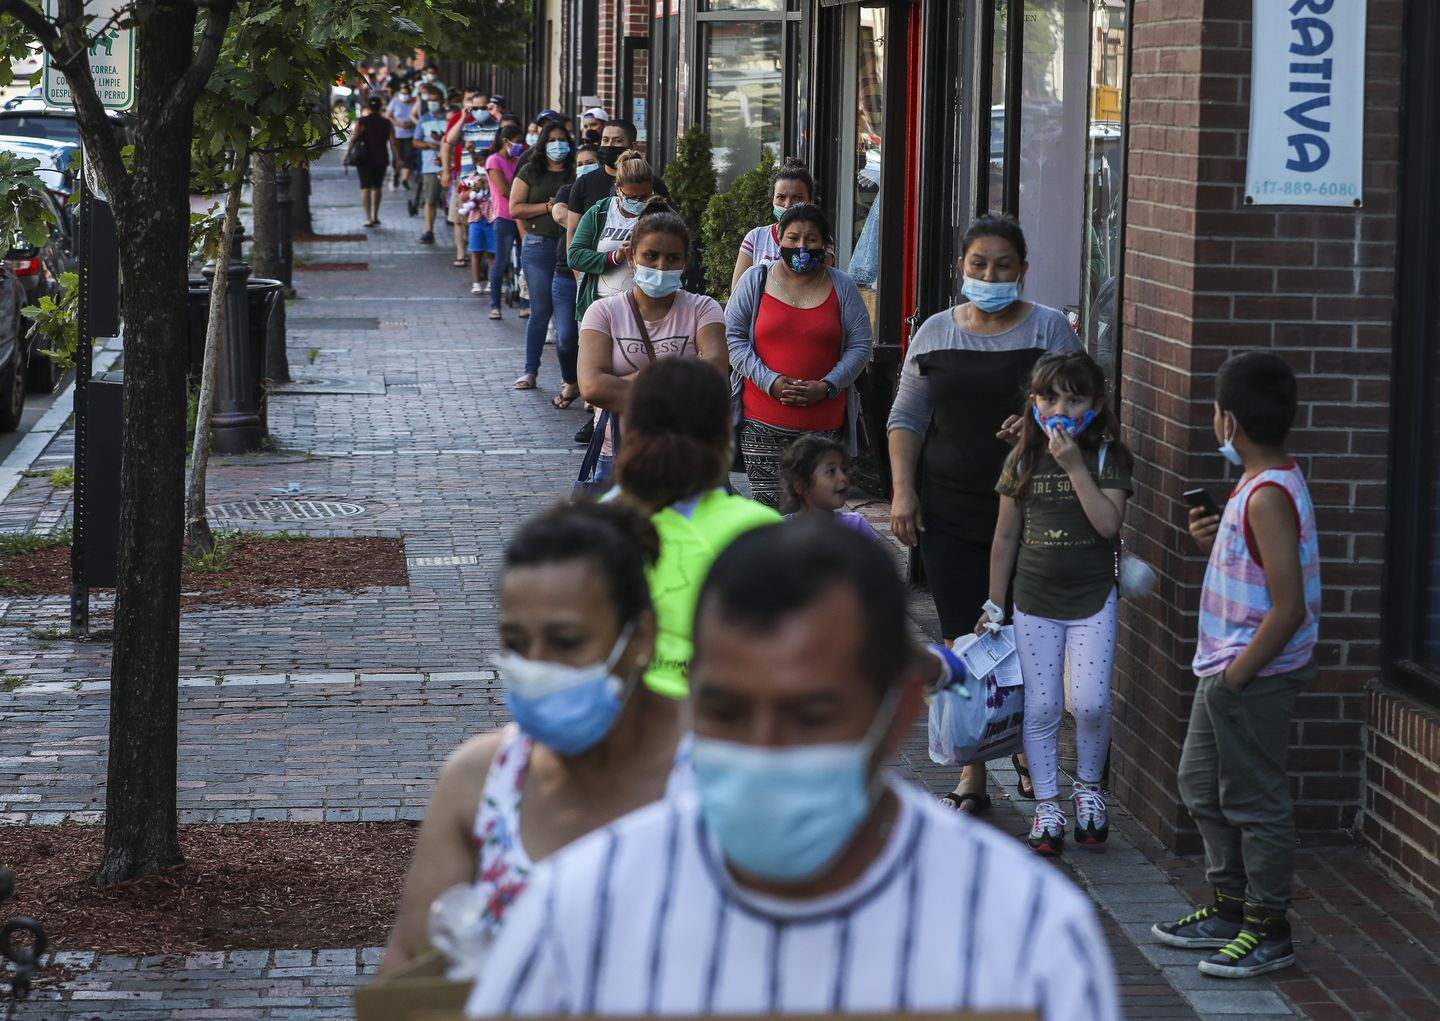 Even as case count drops, aftereffects of coronavirus persist in Chelsea